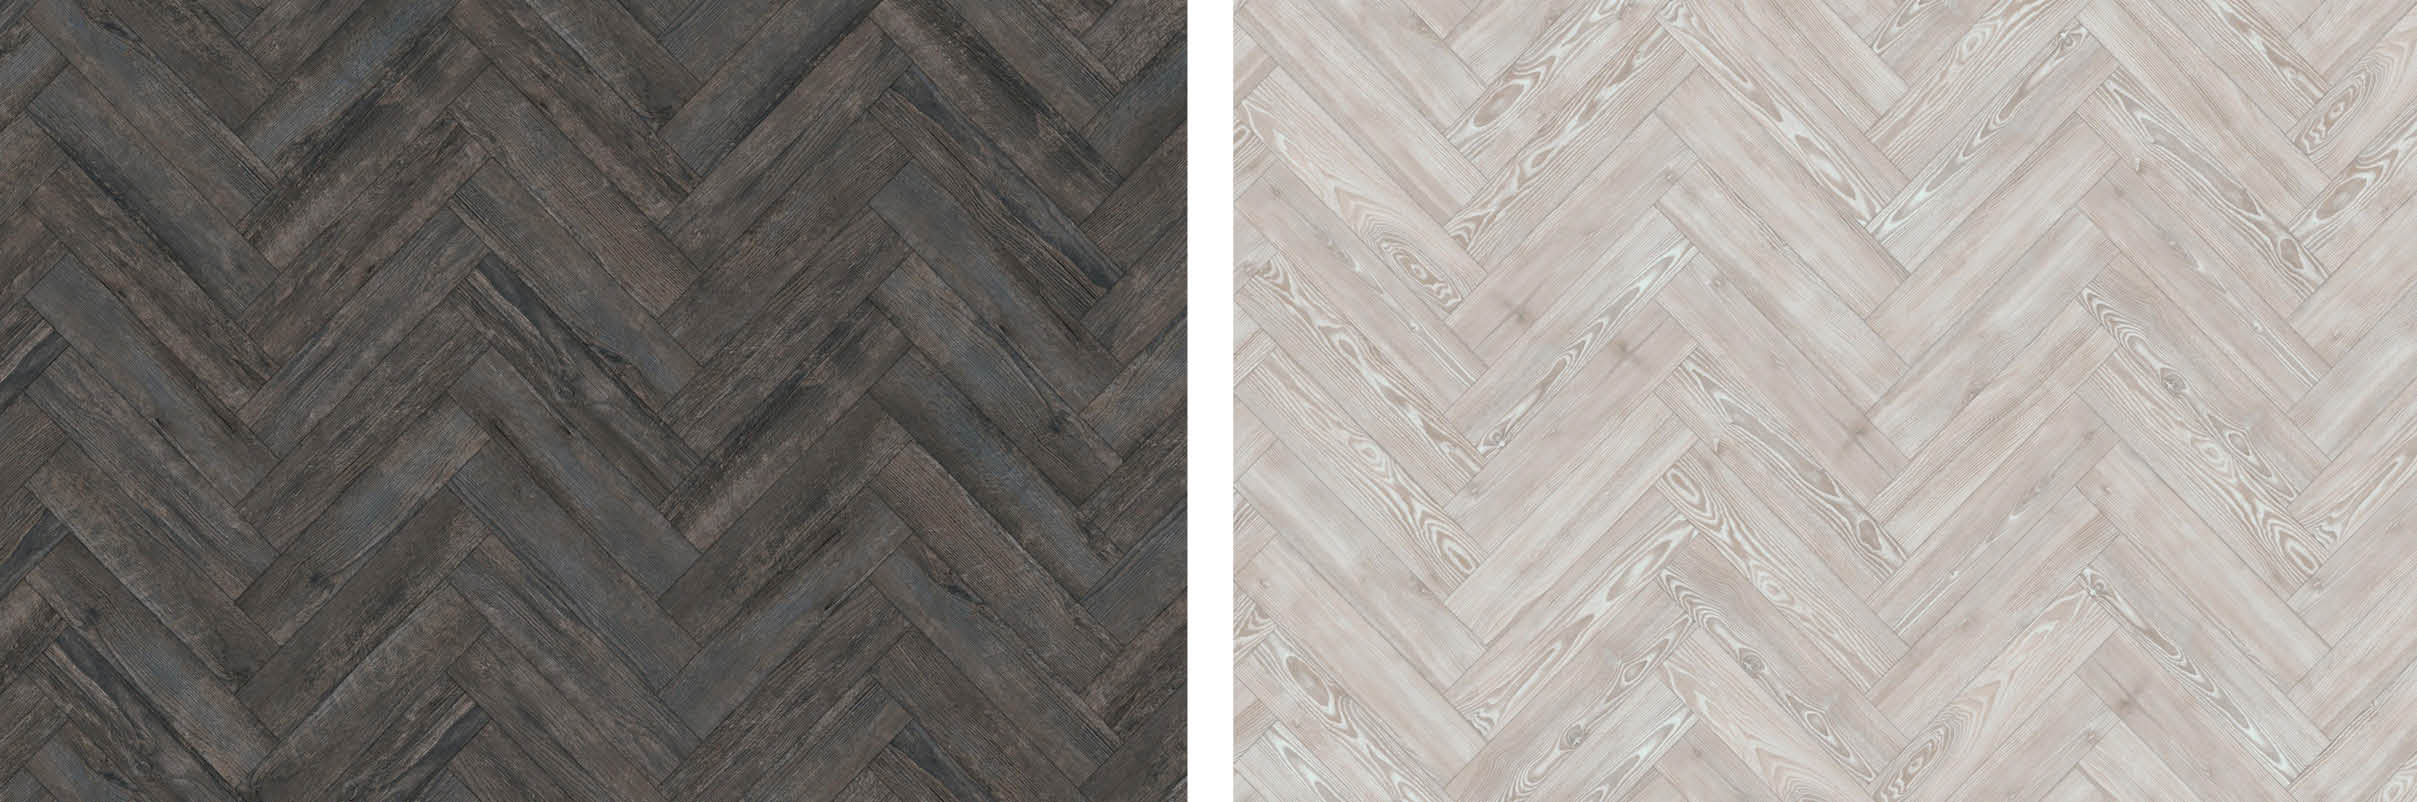 "Large Parquet 4 x 18""/ 101.6 x 457.2mm in Blackened Spa Wood (left) and White Ash (right)"